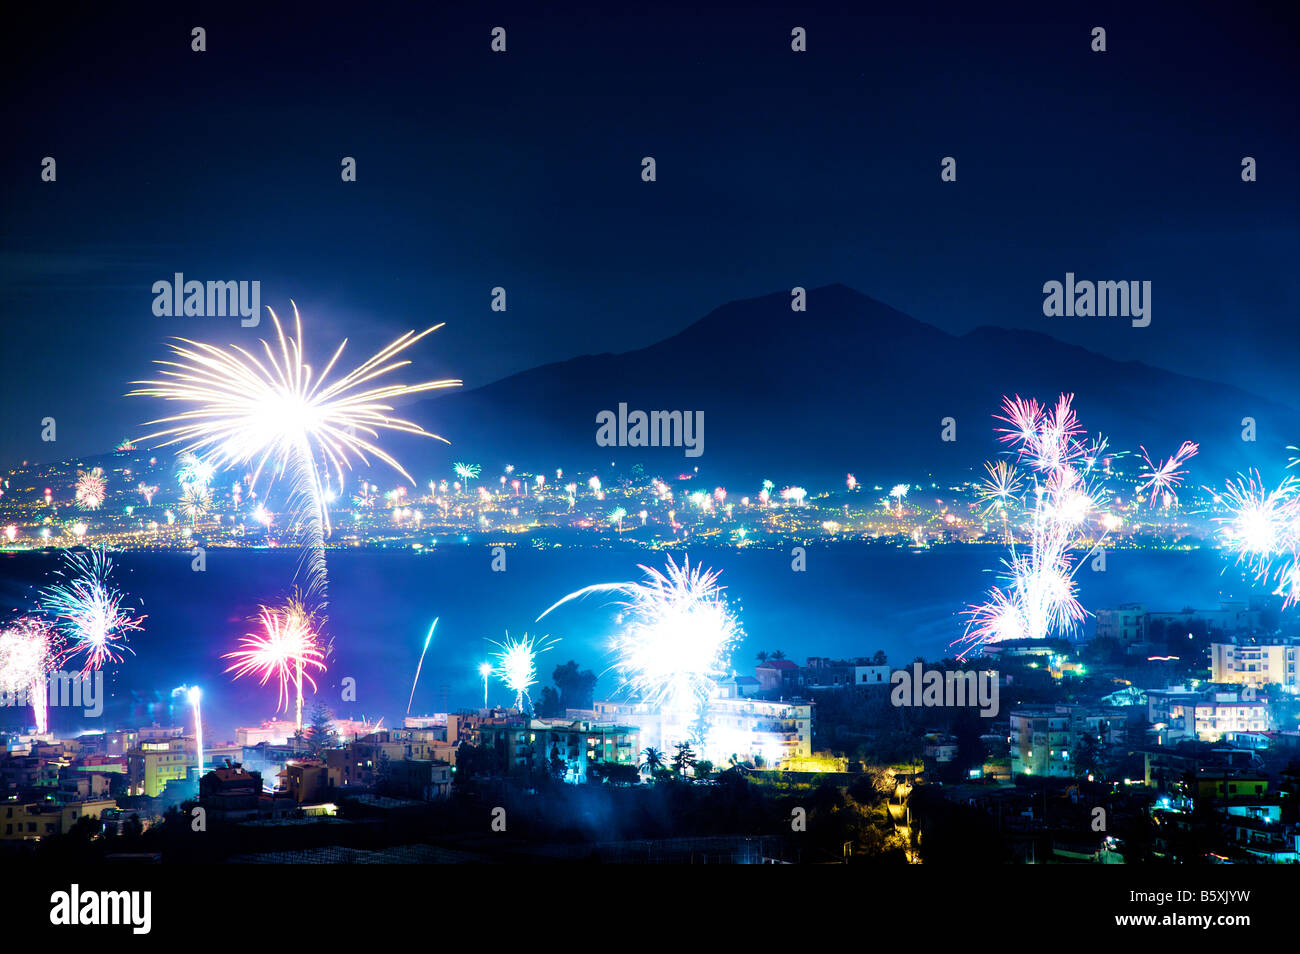 Fireworks light up Naples in celebration of the New Year - Stock Image